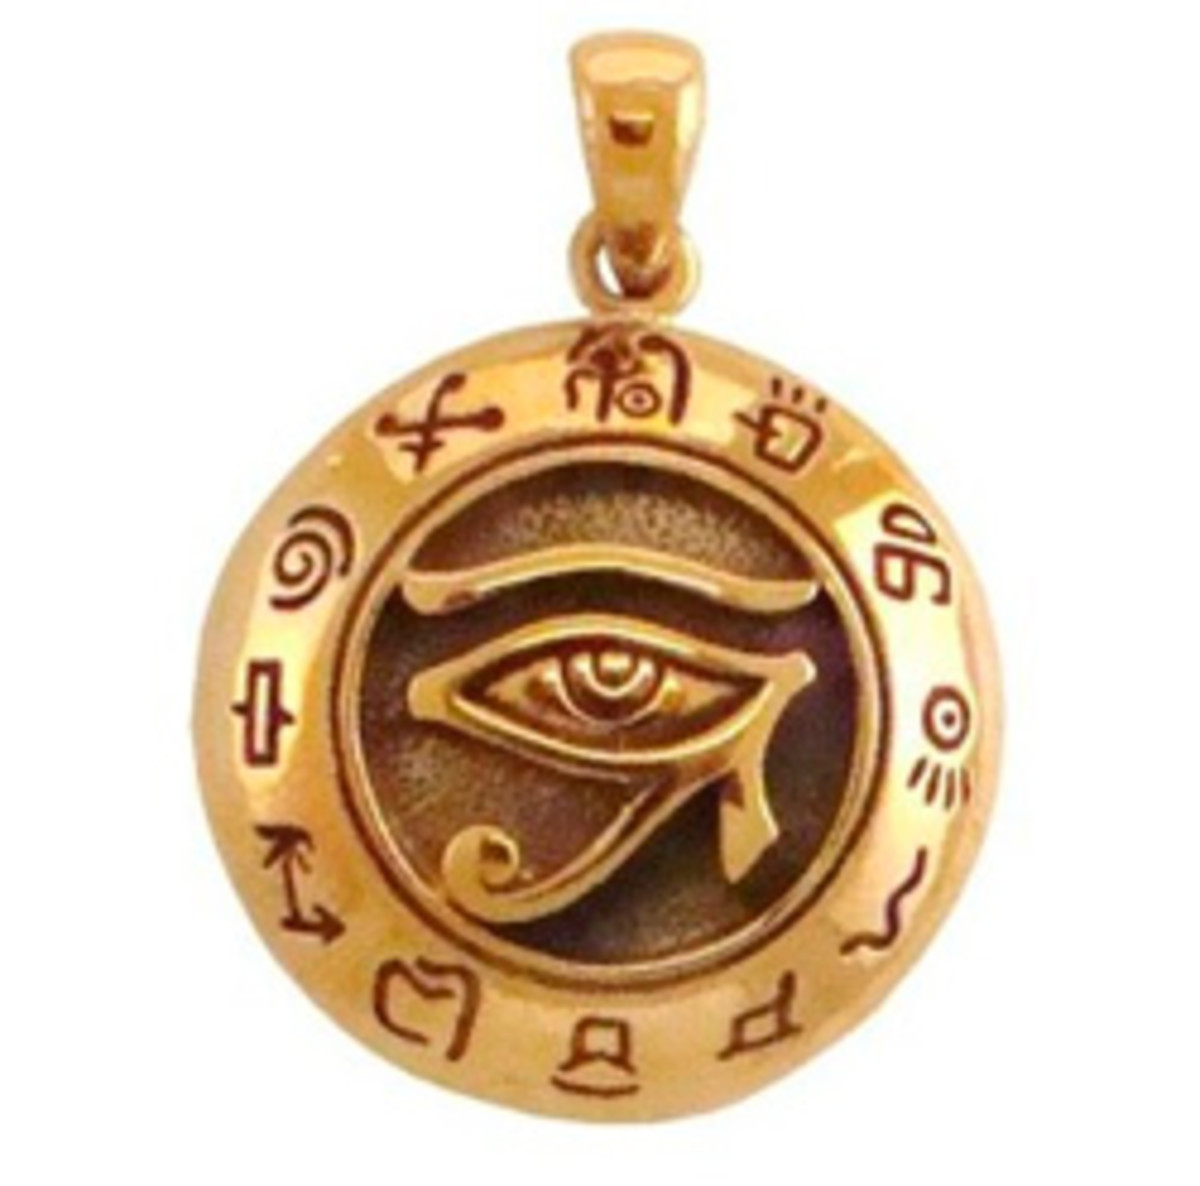 This bronze Egyptian pendant modelled on the Udjat Eye of Horus Ra is a good example of the sun energy jewellery and is available from Amazon.